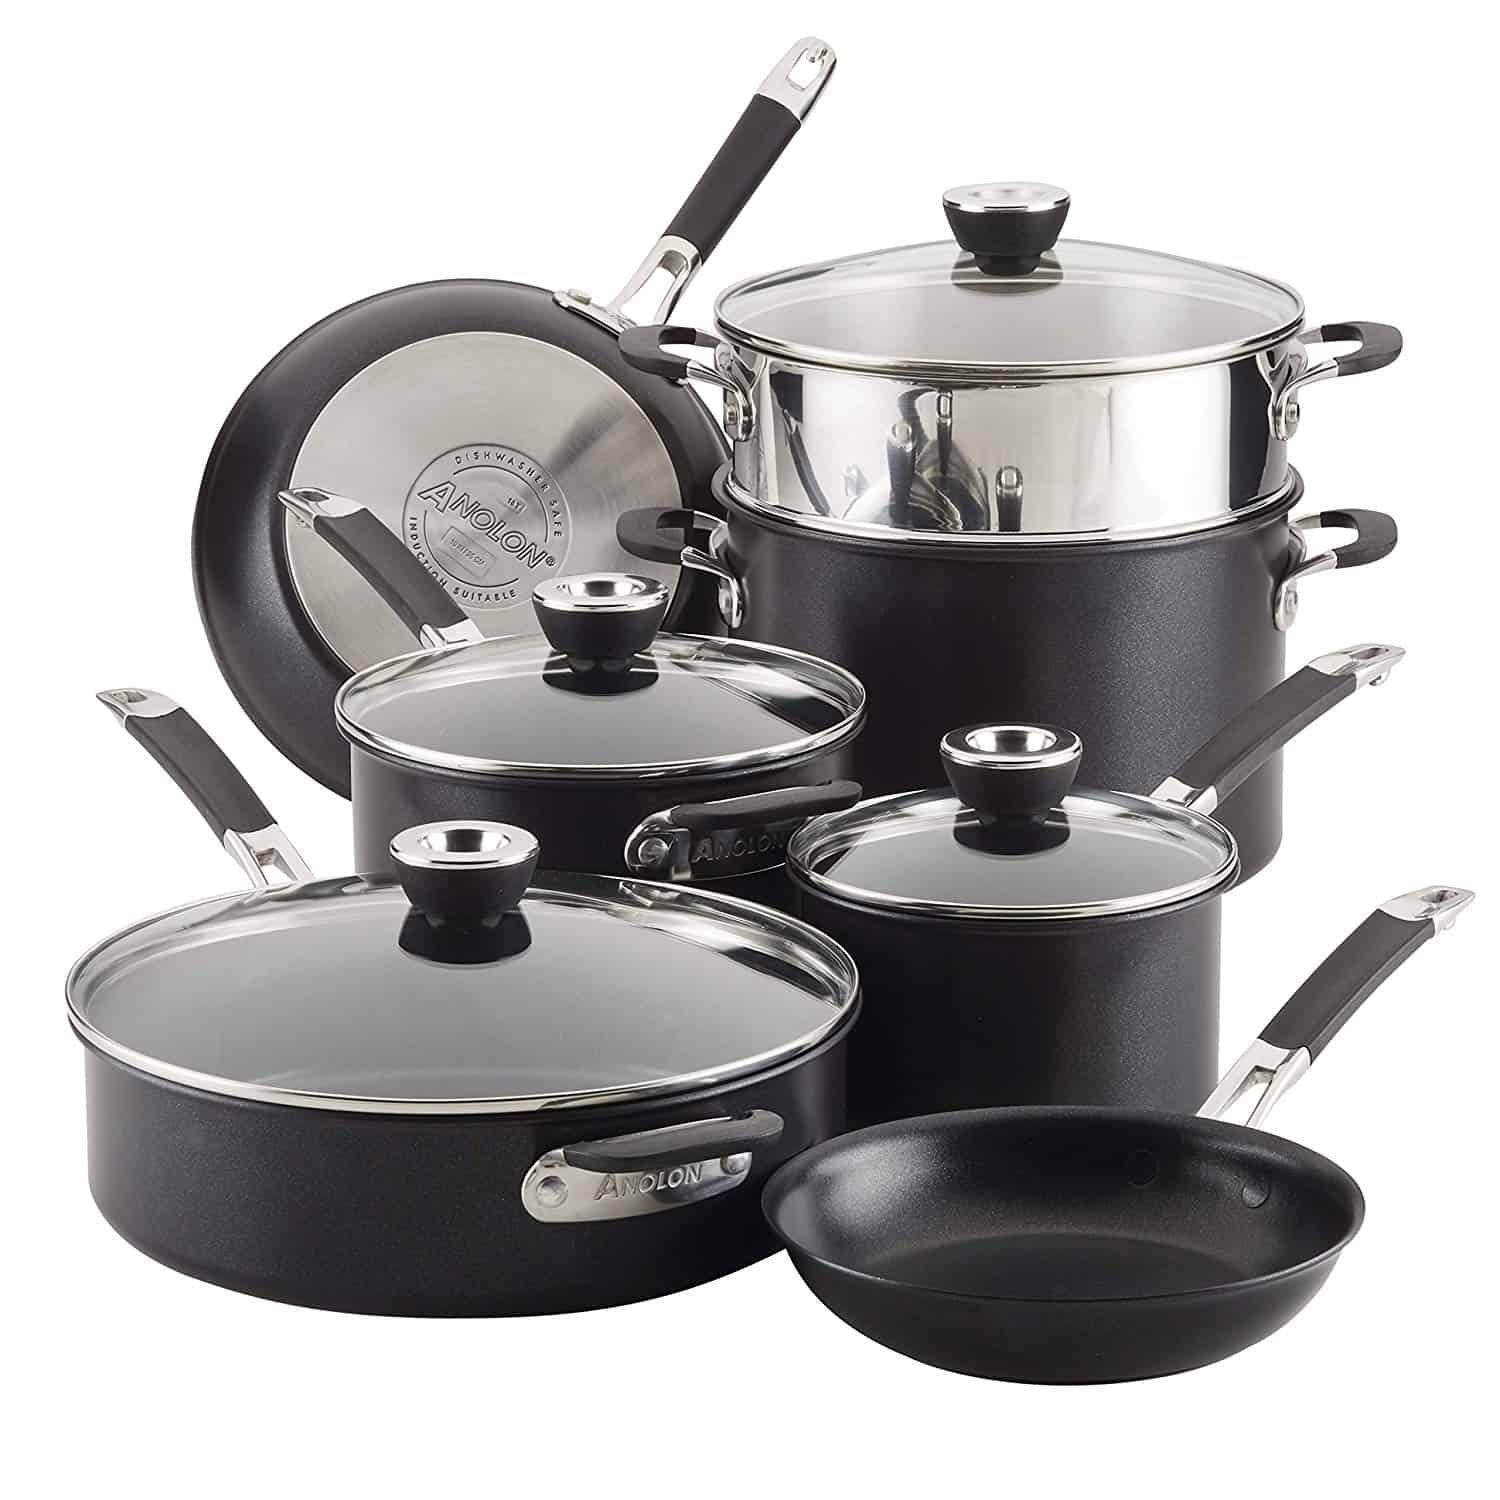 Anolon Smart Stack Hard Anodized Nonstick Cookware Set Review